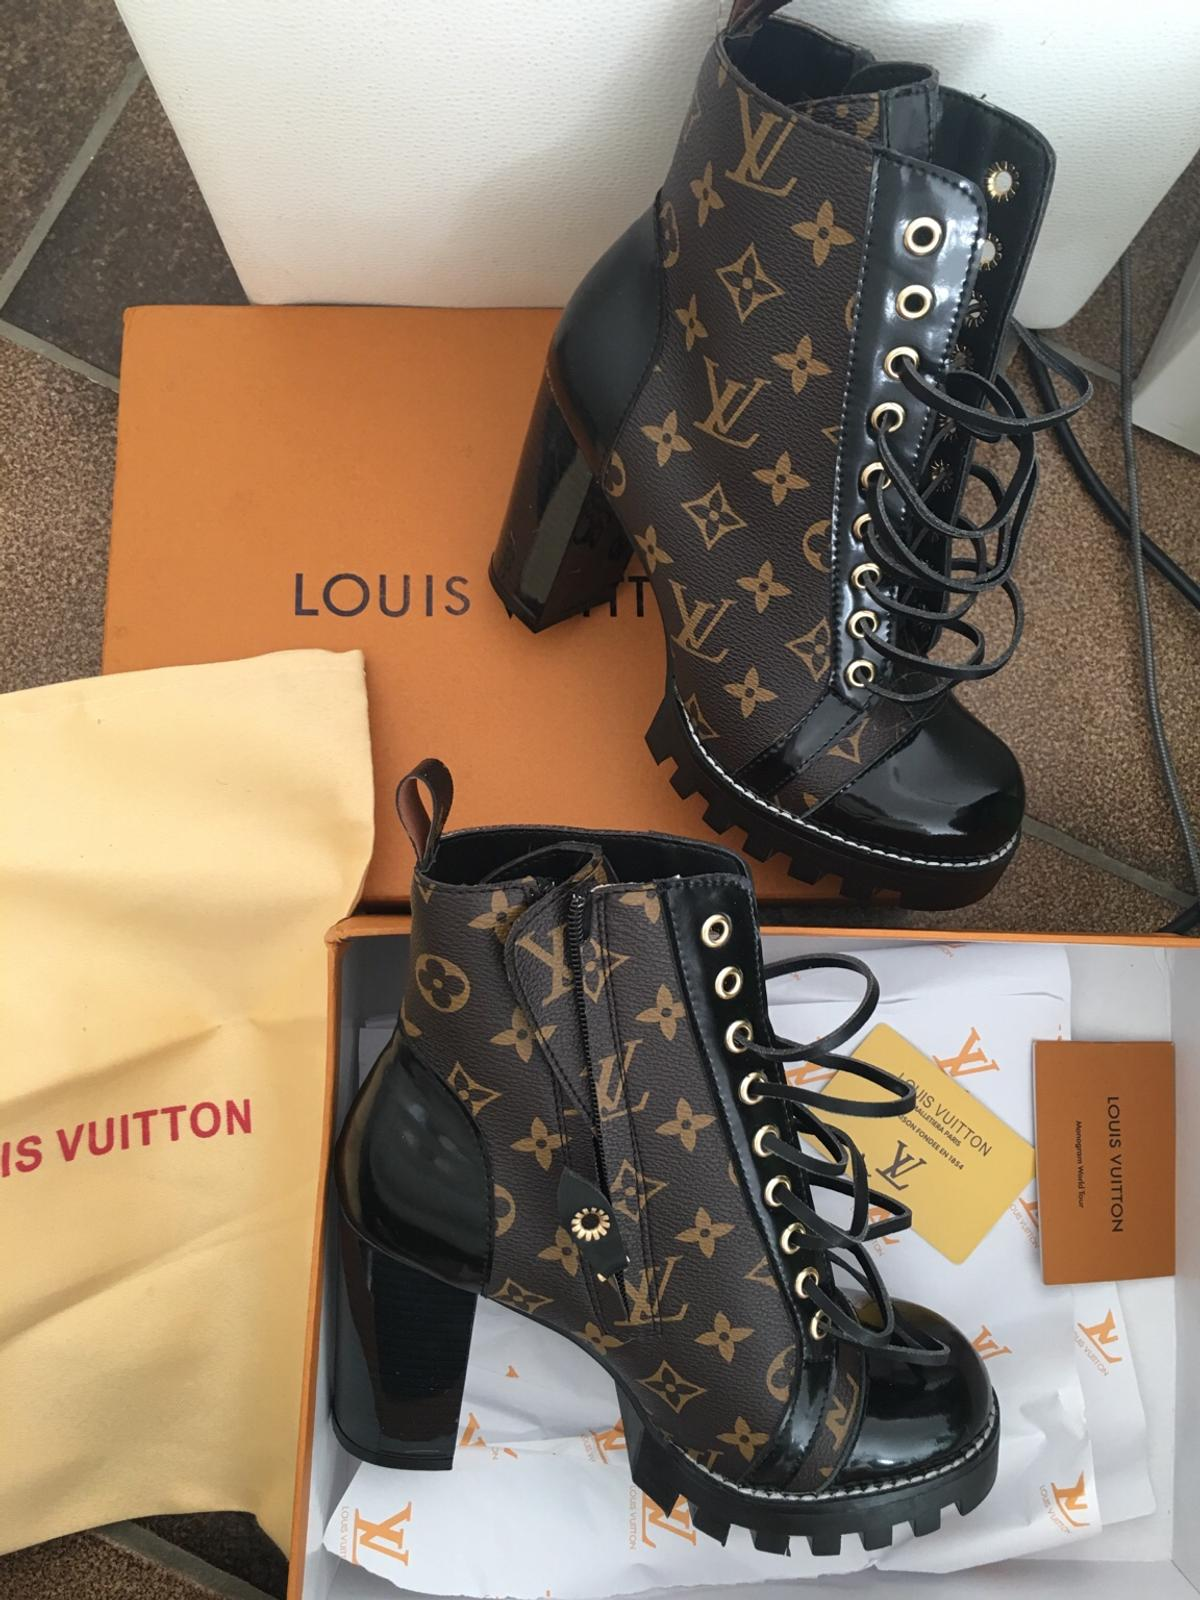 Stiefel Like Stiefel Like Louisvuitton Neue Louisvuitton Neue 35TFKul1cJ